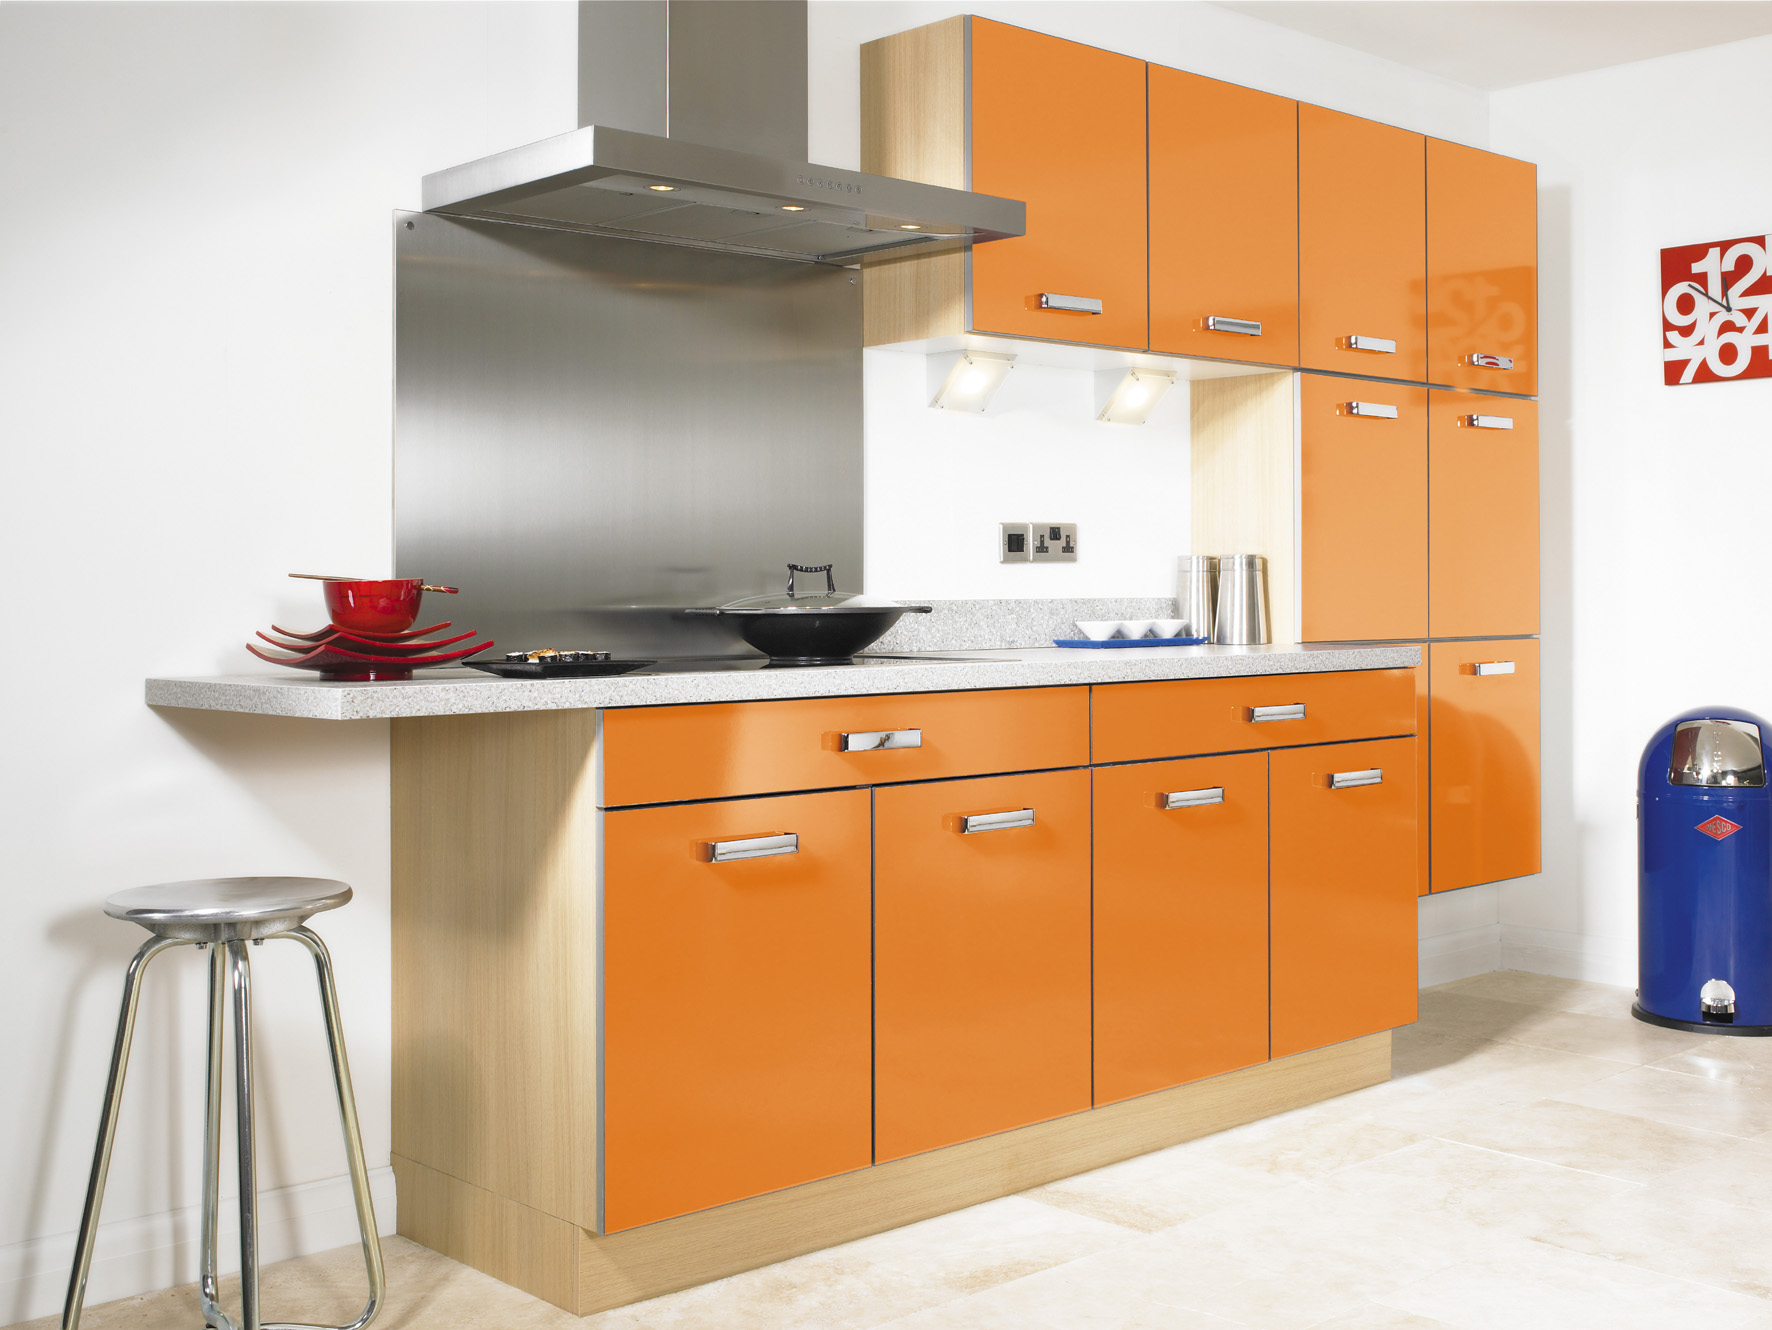 Top Orange Kitchen Design Ideas 1772 x 1330 · 364 kB · jpeg